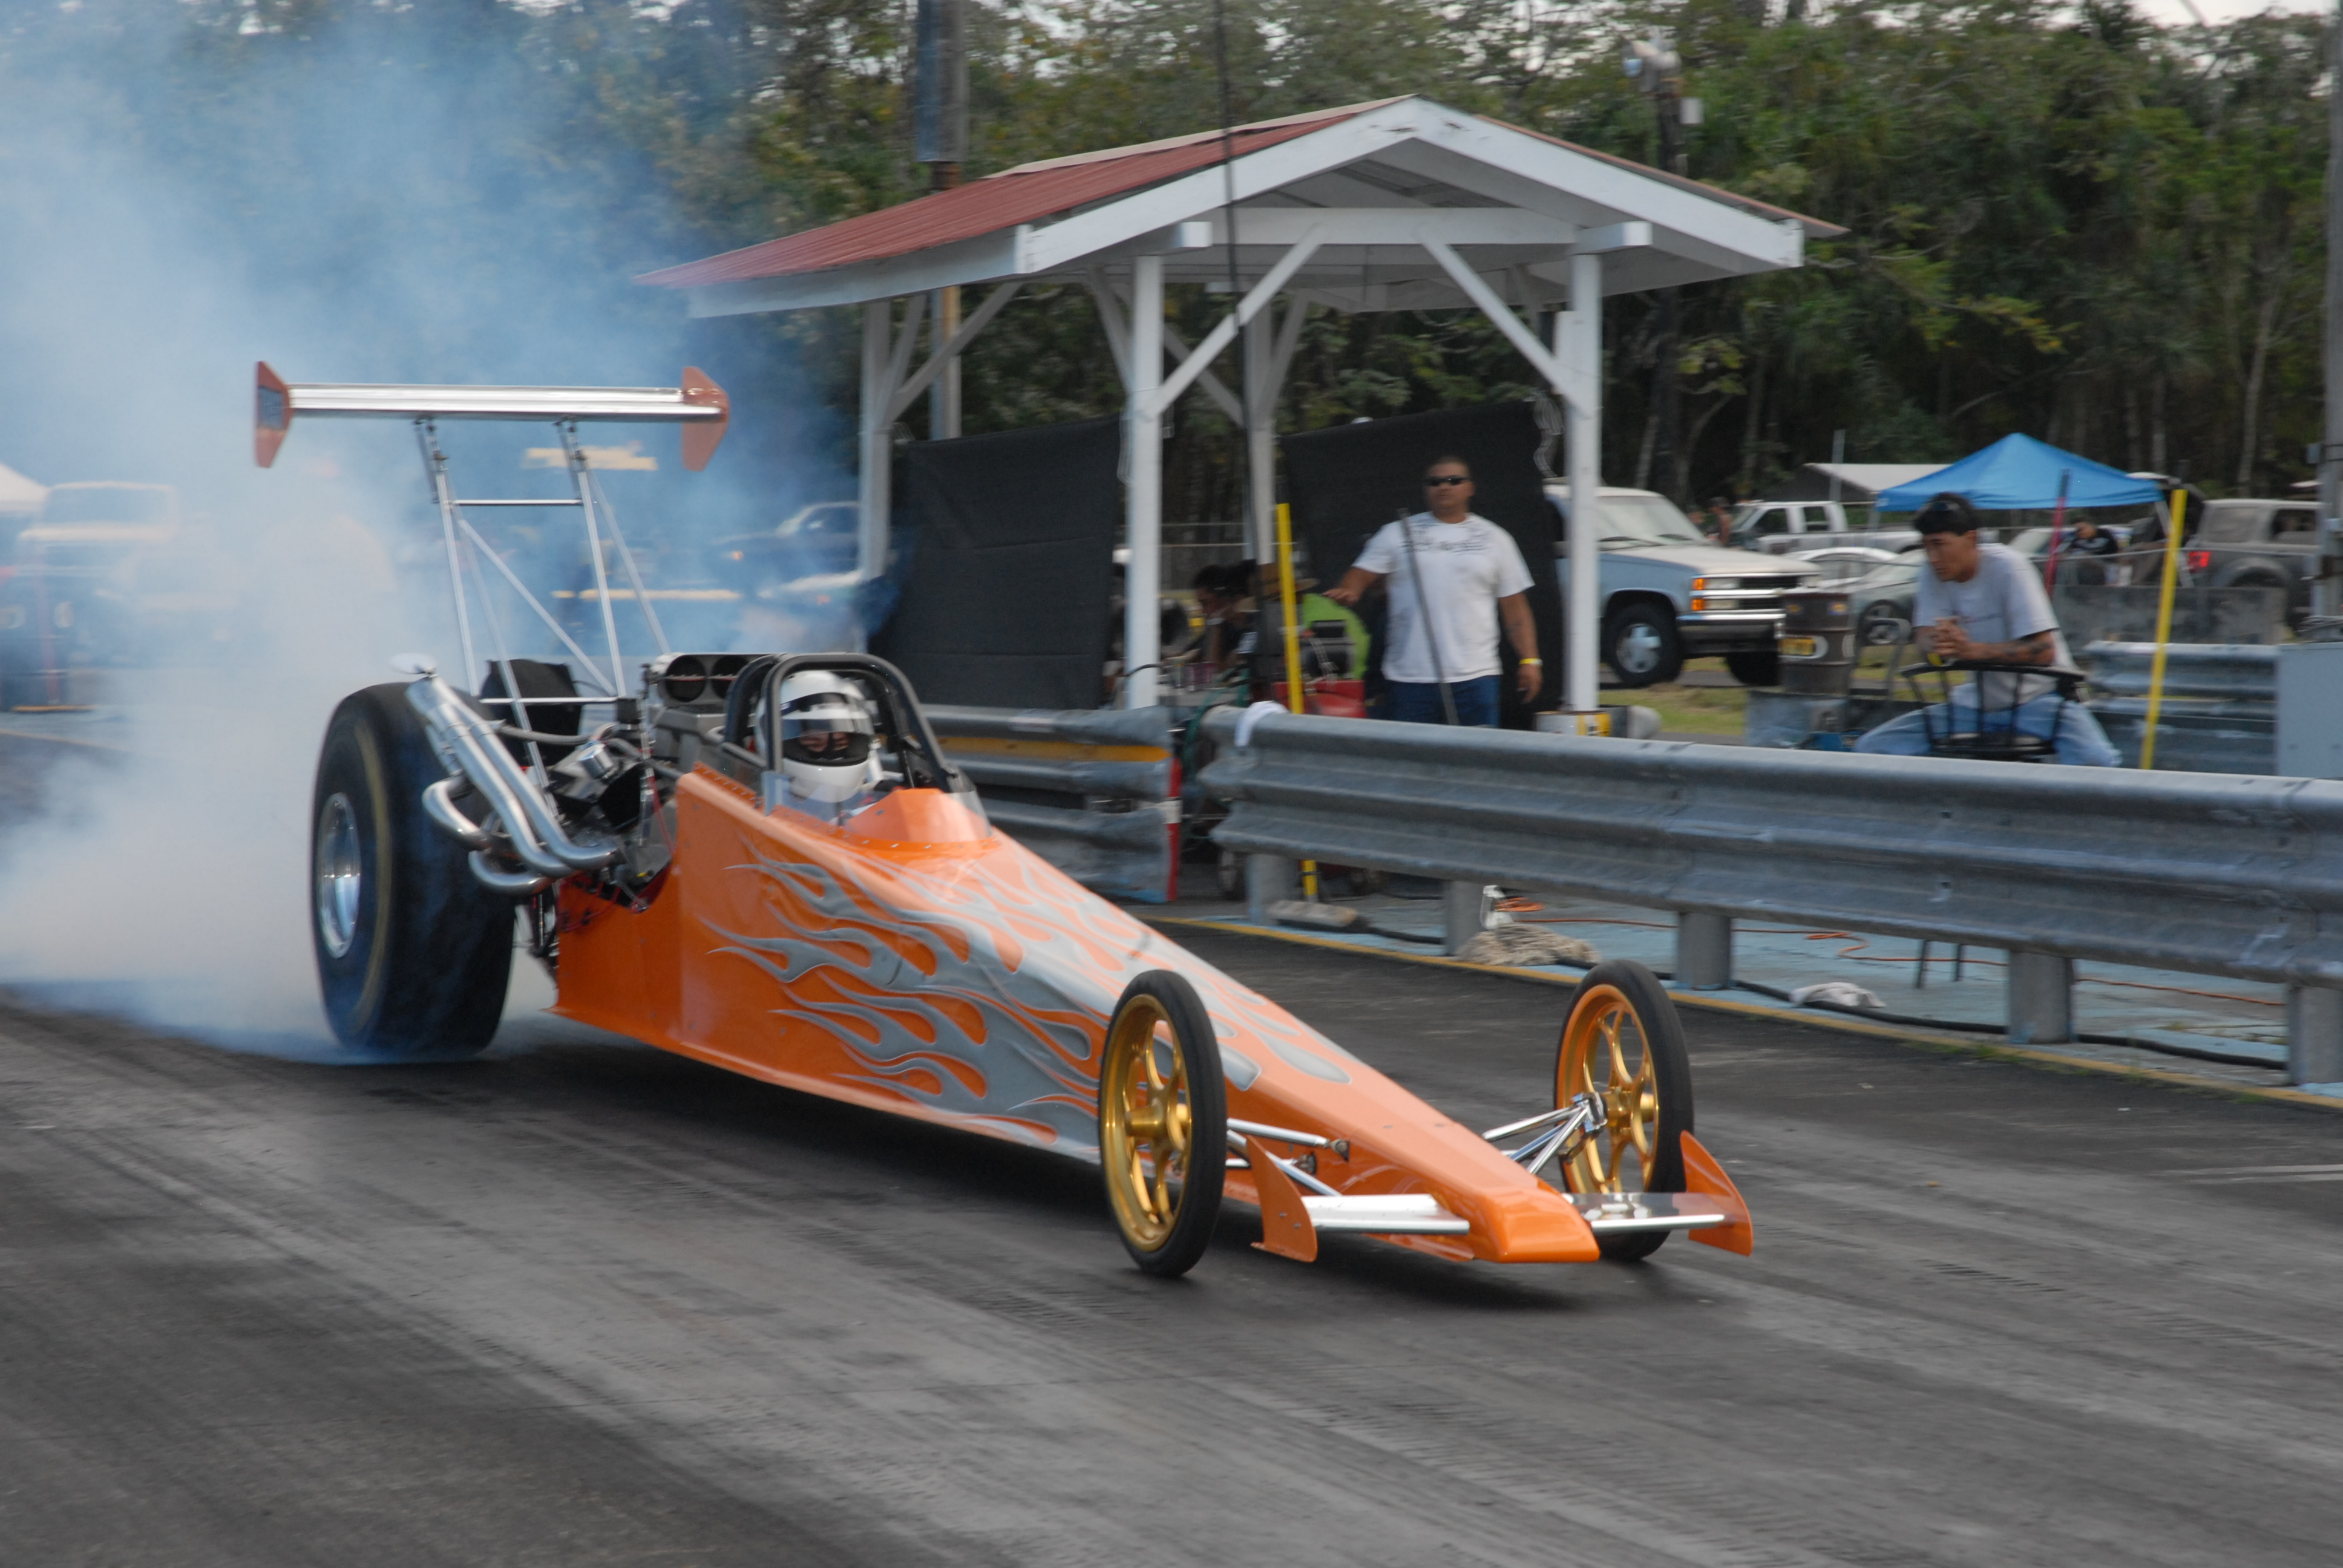 Paul Crivello Top Comp Dragster Hawaii